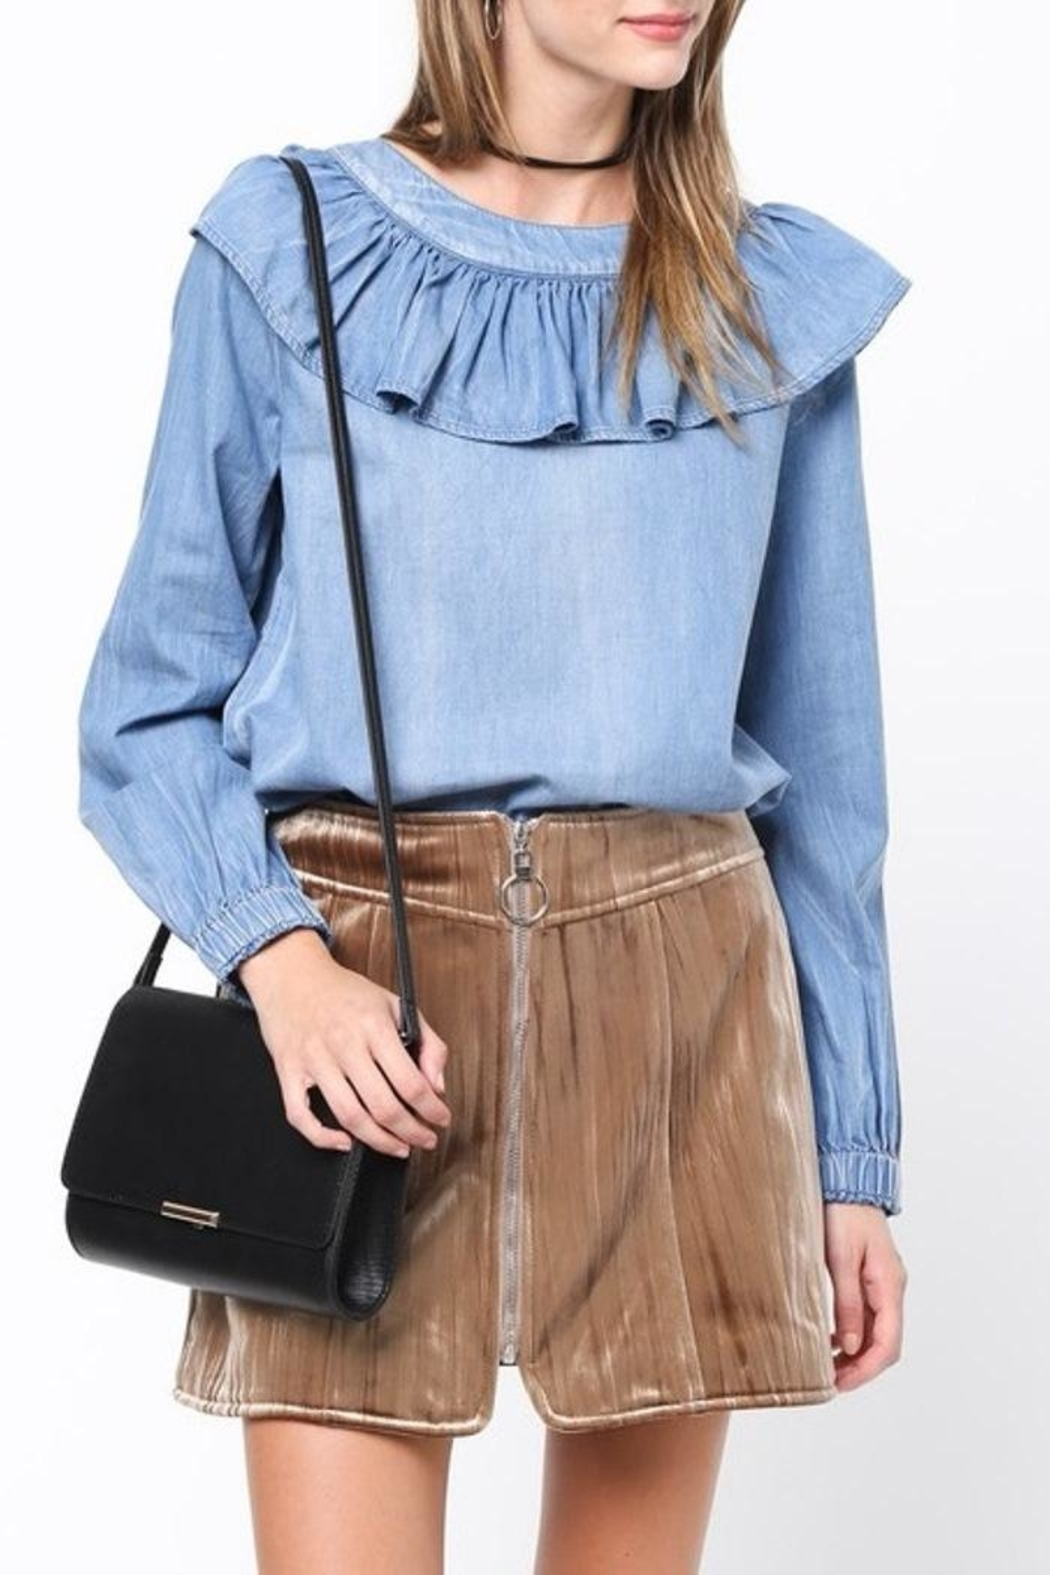 Very J Chambray Ruffle Top - Front Full Image